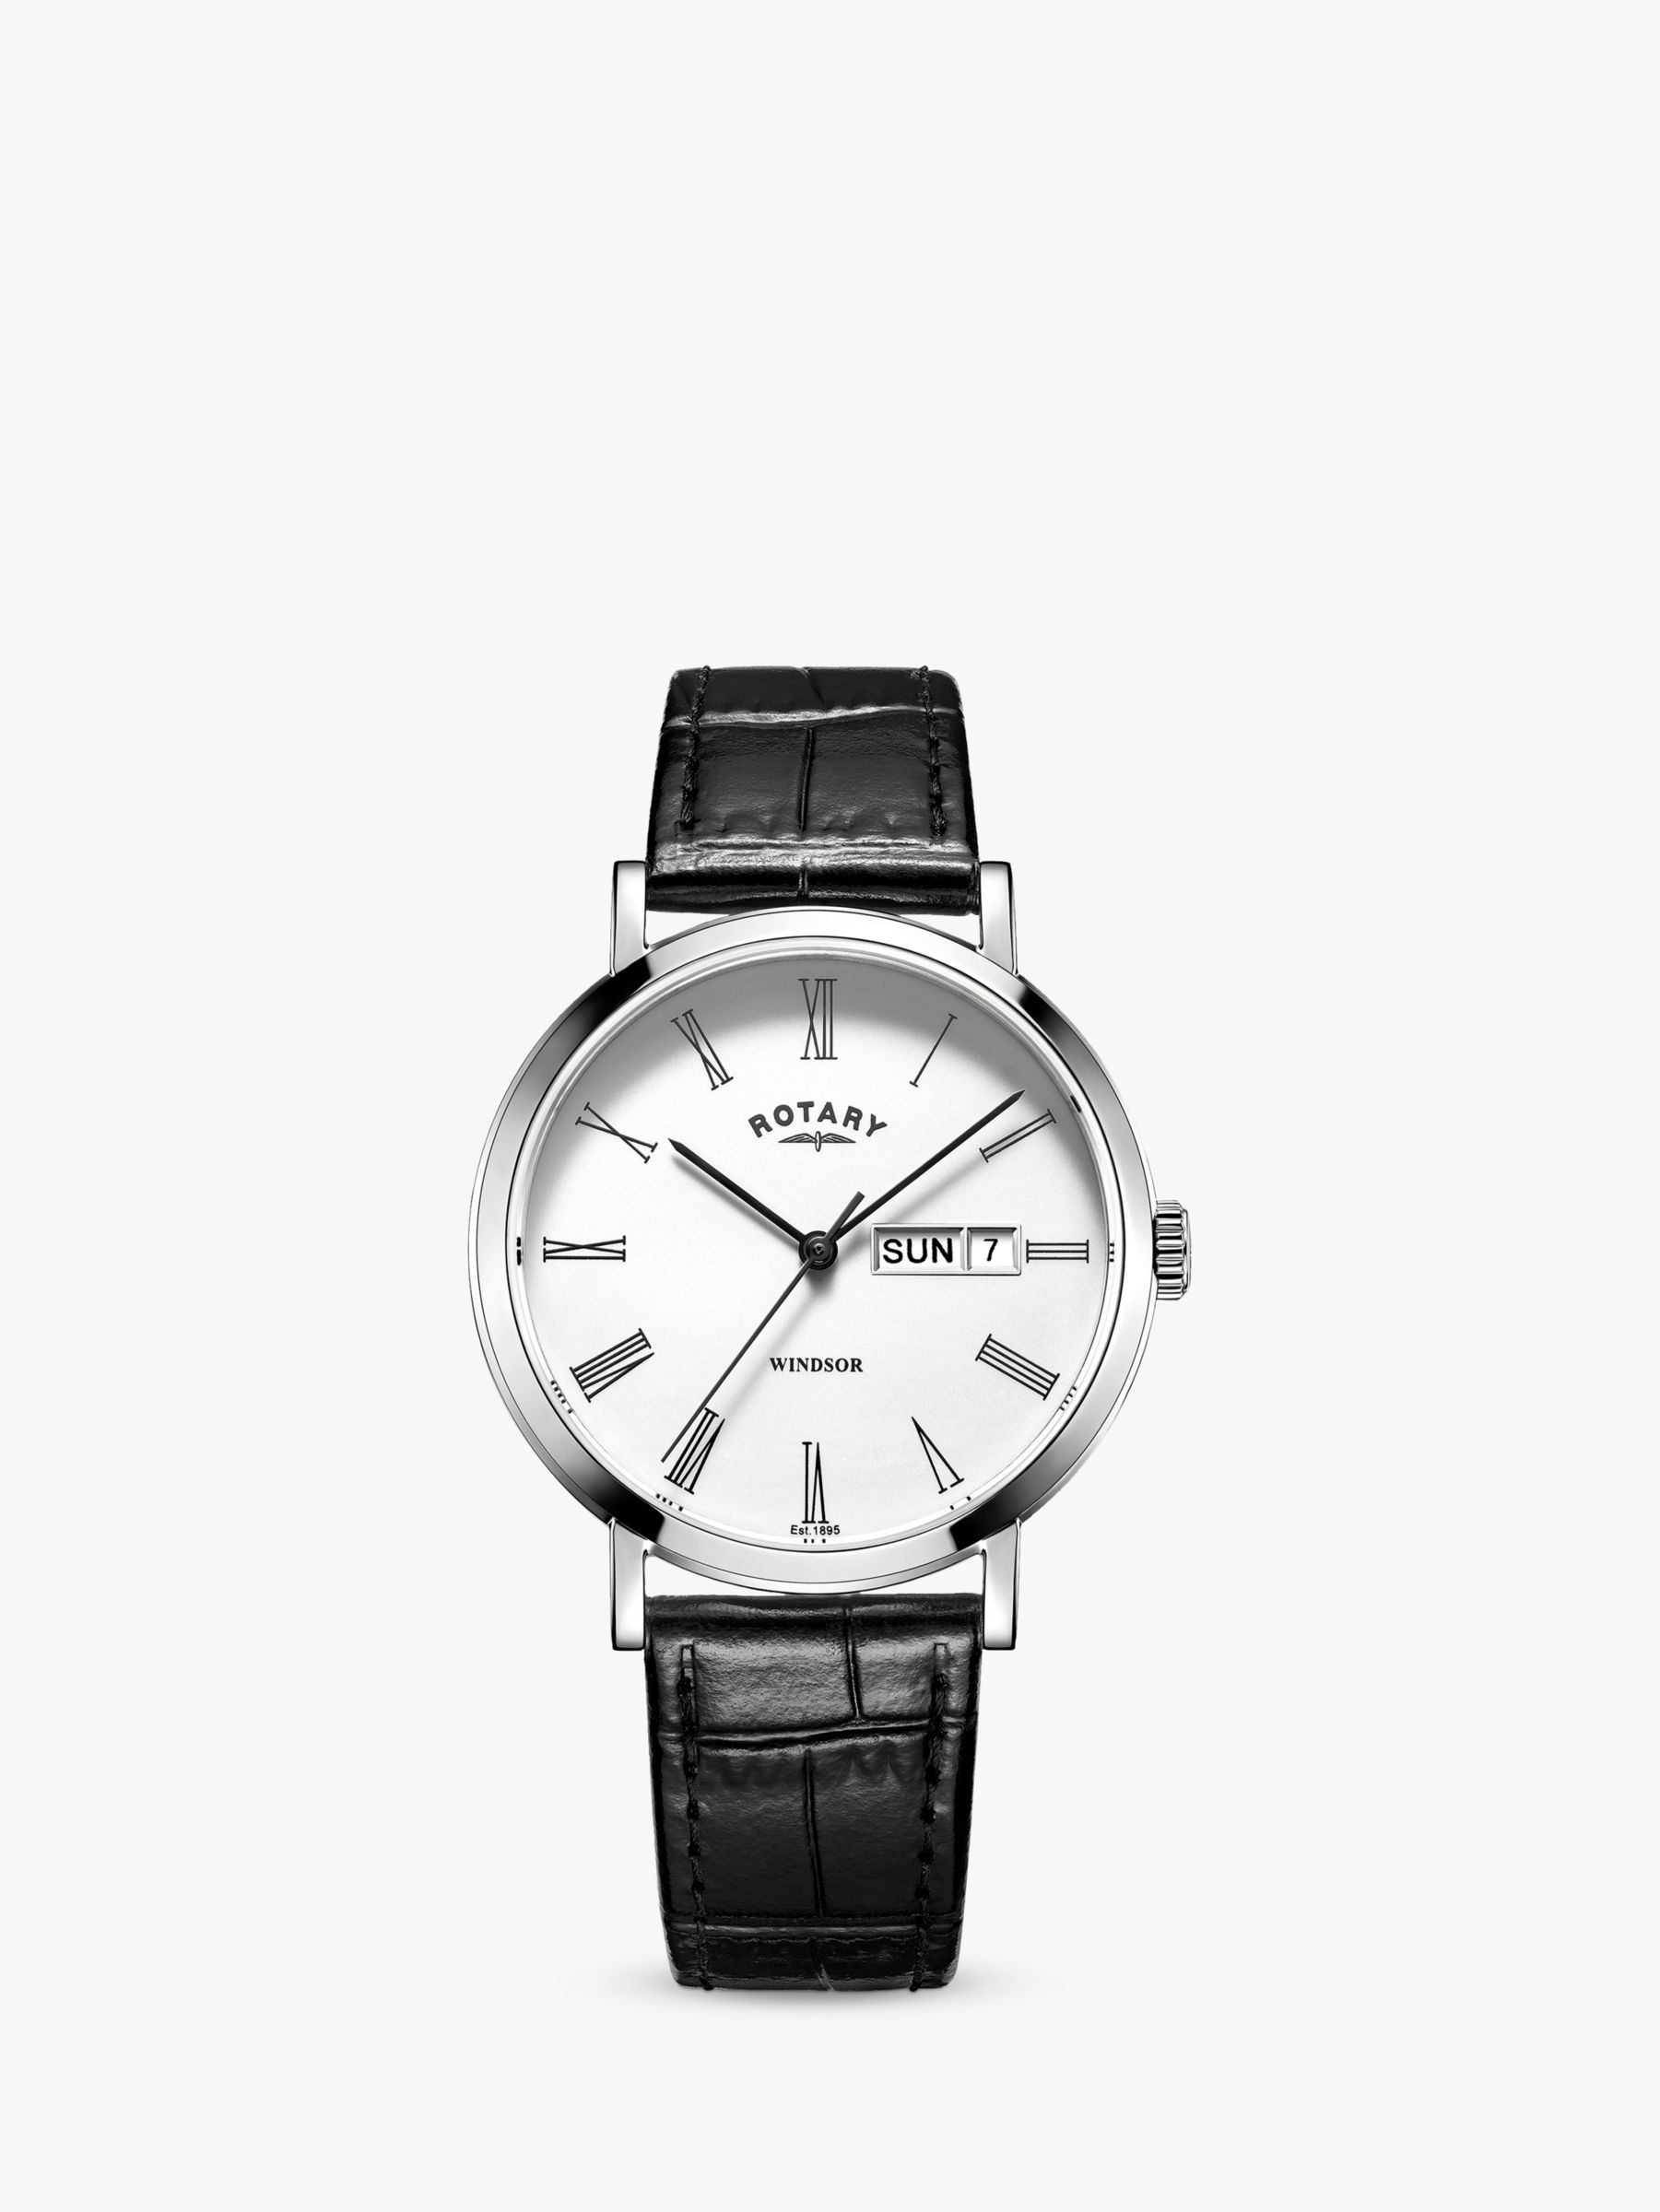 Rotary Rotary GS05300/01 Men's Windsor Day Date Leather Strap Watch, Black/White